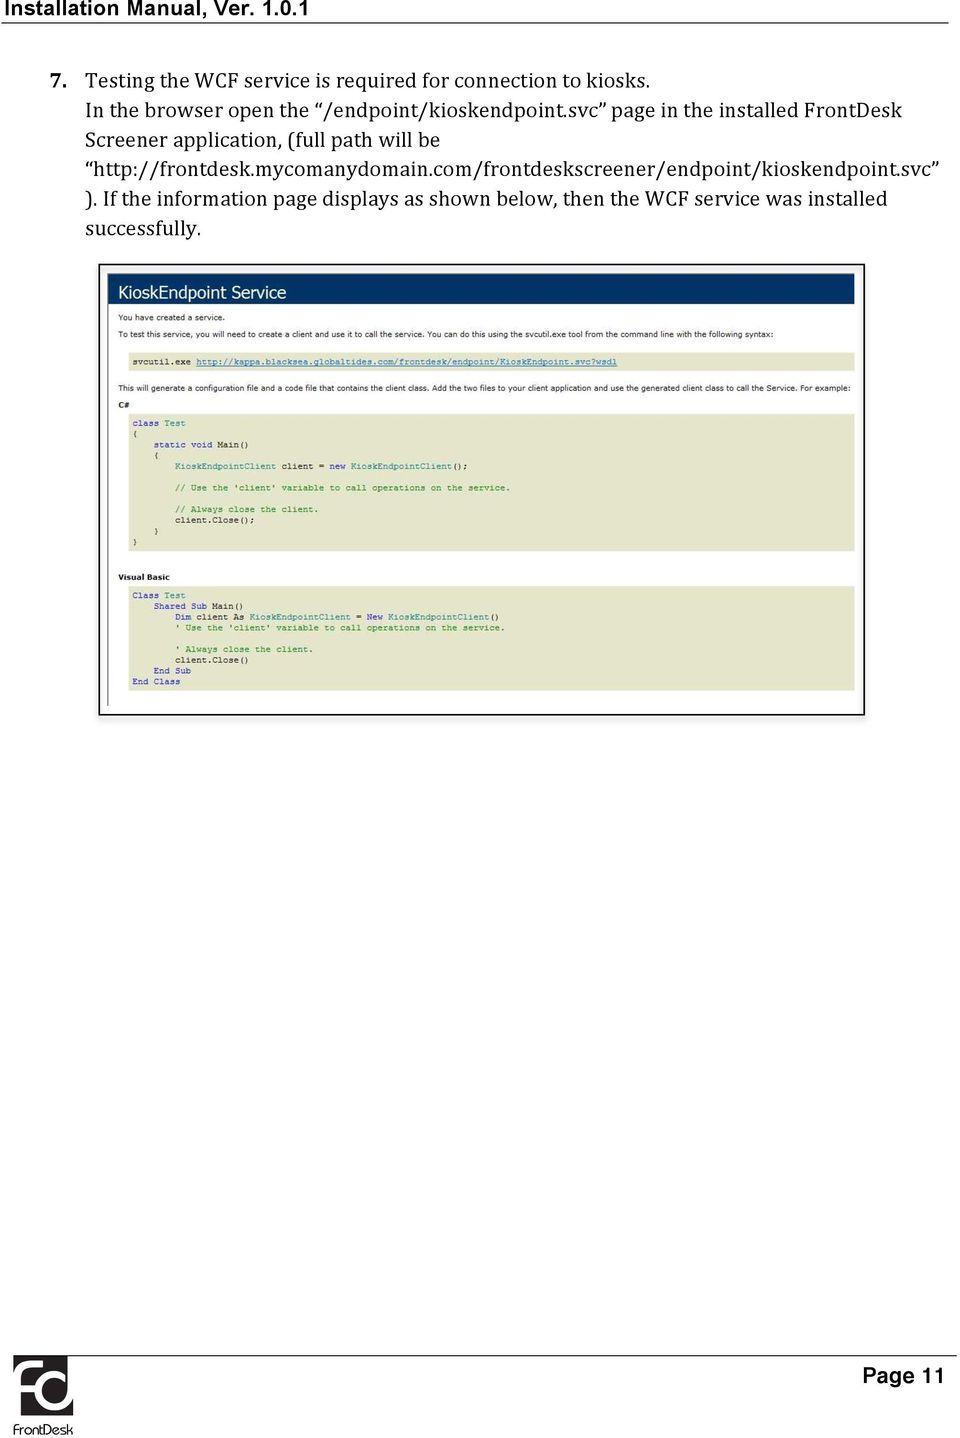 svc page in the installed FrontDesk Screener application, (full path will be http://frontdesk.